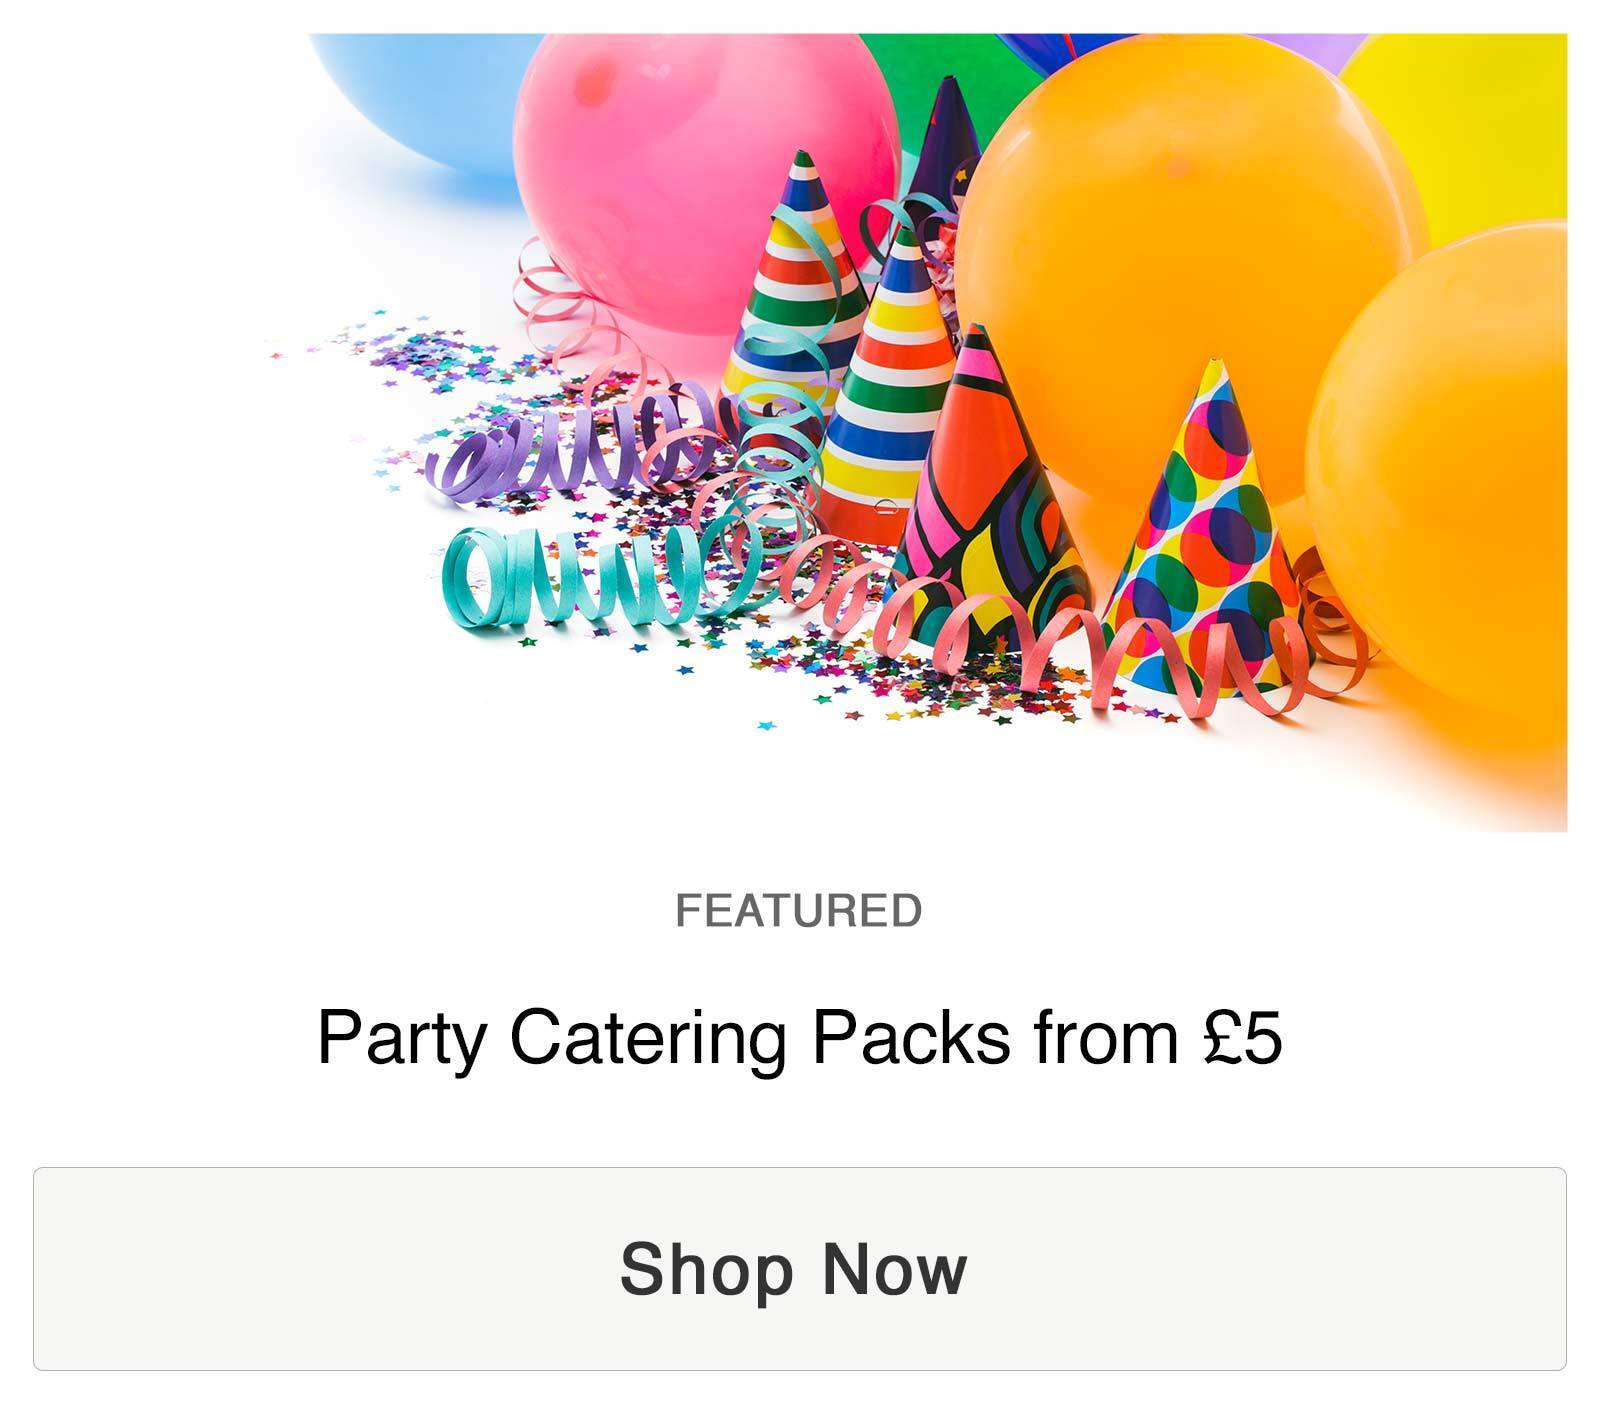 Party Catering Packs from £5